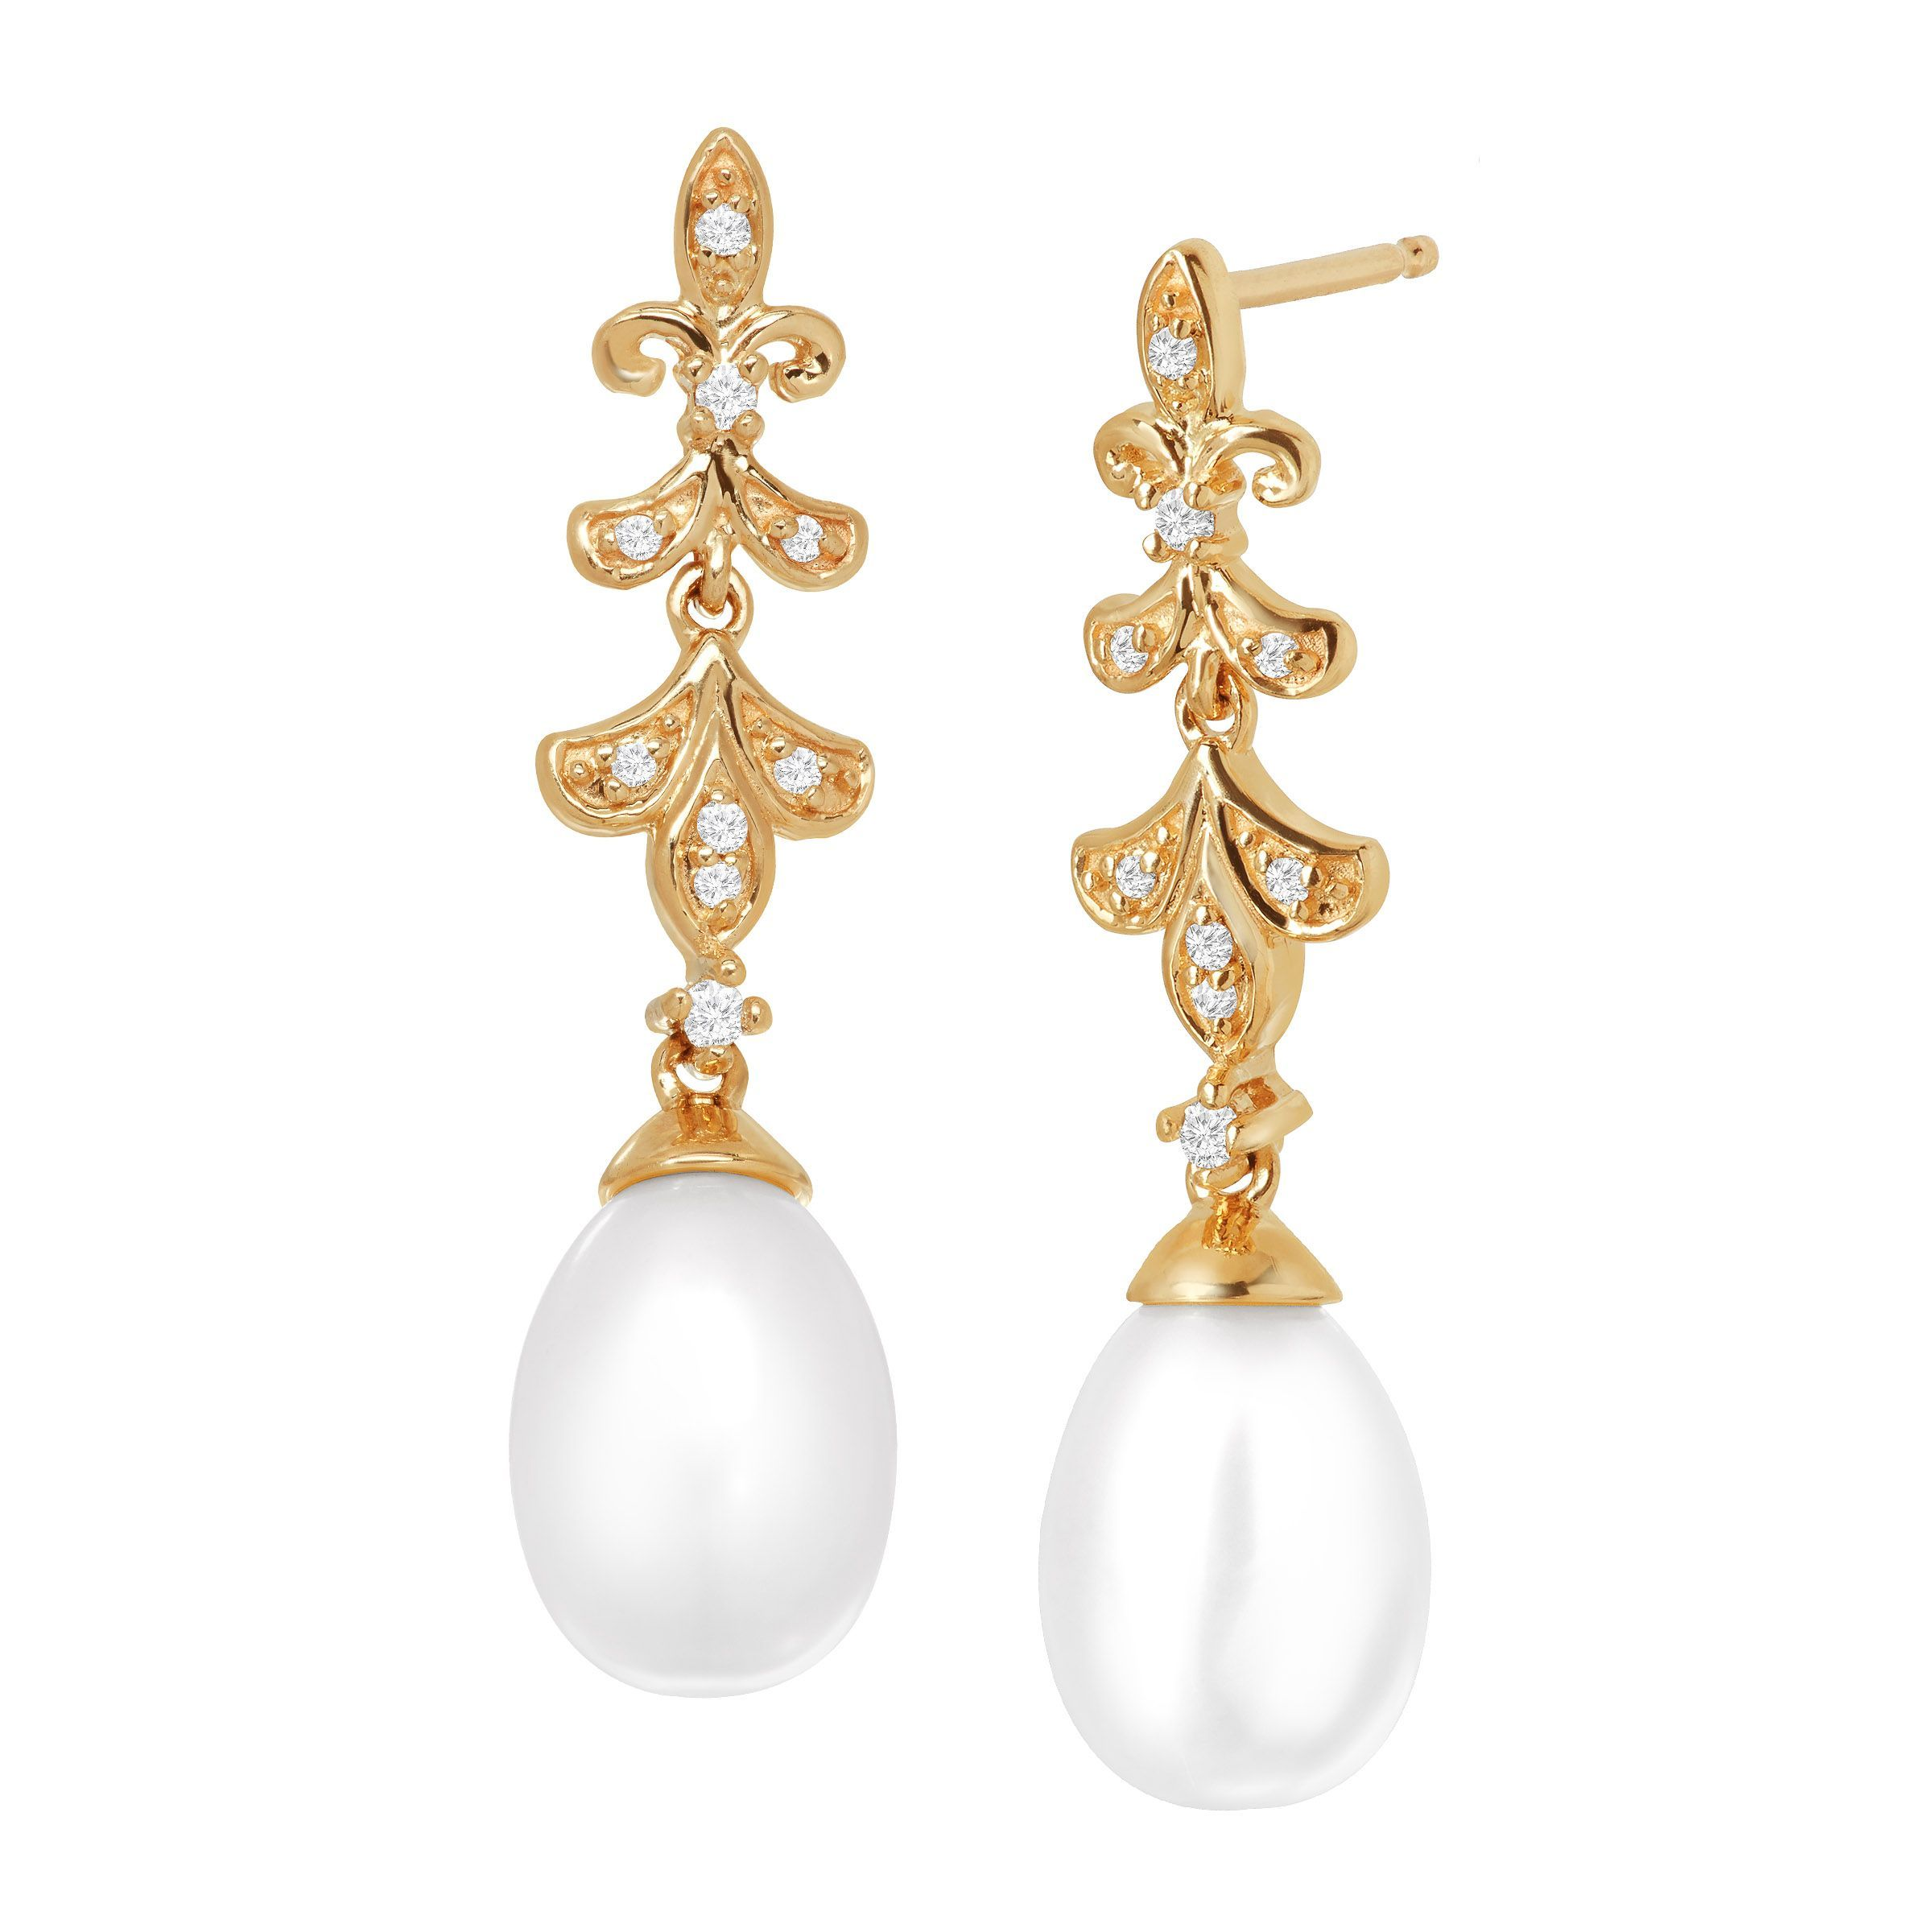 Fleur-De-Lis Freshwater Pearl Drop Earrings with Diamonds in 10K Gold Add these elegant and classic pearl drops to your collection! 9x7 mm freshwater elongated pearls suspend from a Fleur-de-Lis-like design, decorated with round-cut diamond accents and crafted in 10K gold. Pieces measure 1 1/8 by 1/4 inches.